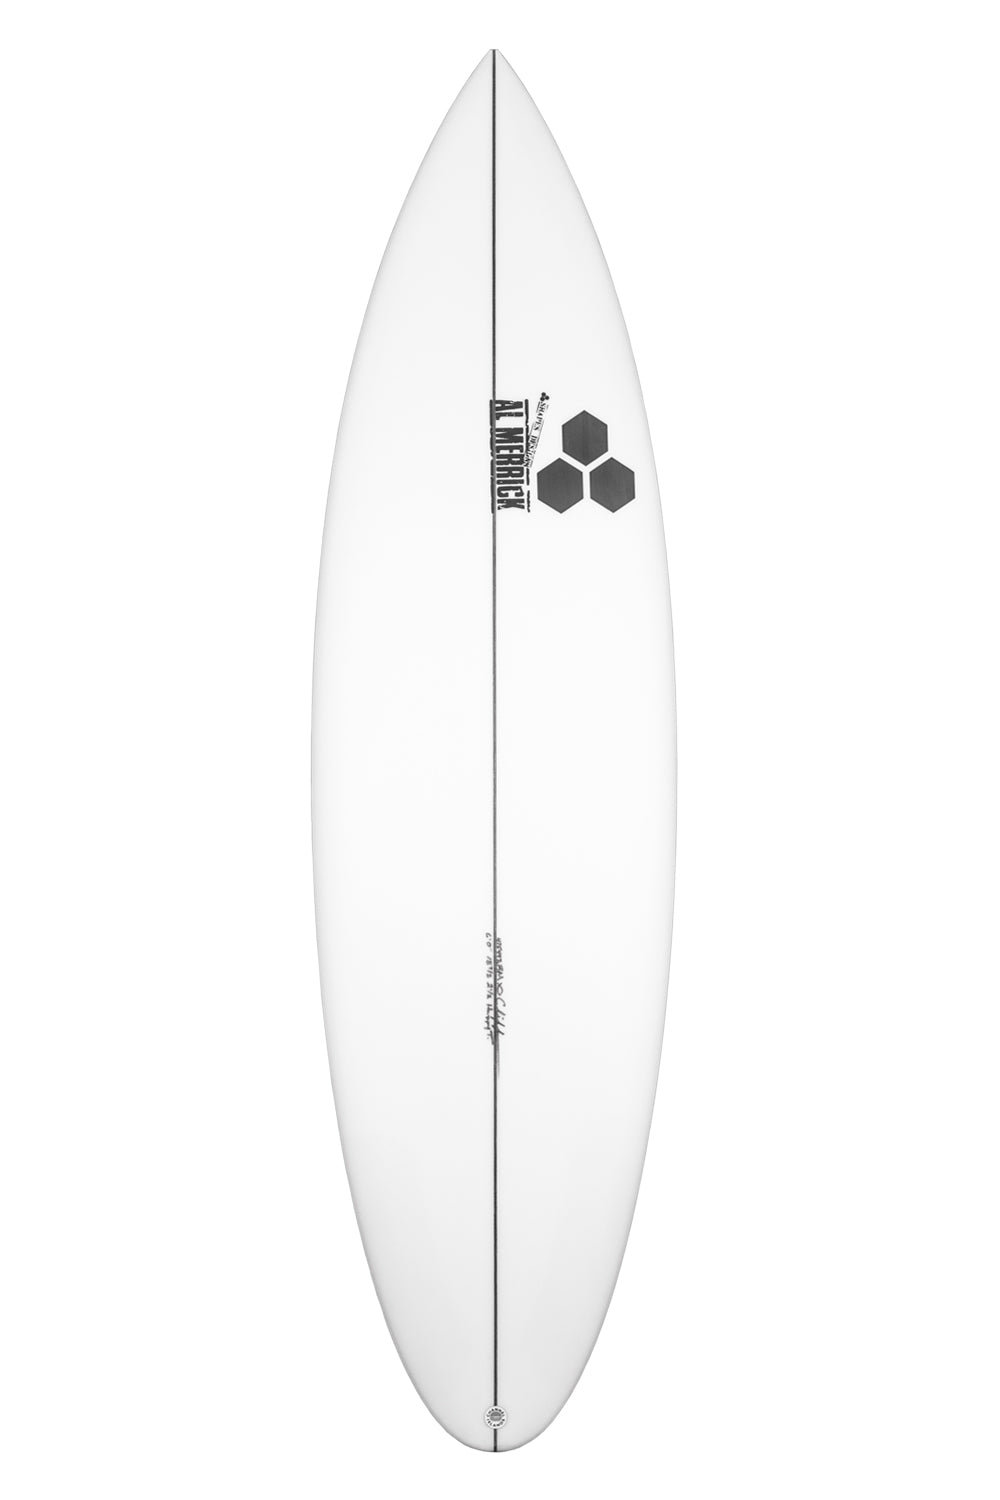 Channel Islands Happy Traveler Surfboard